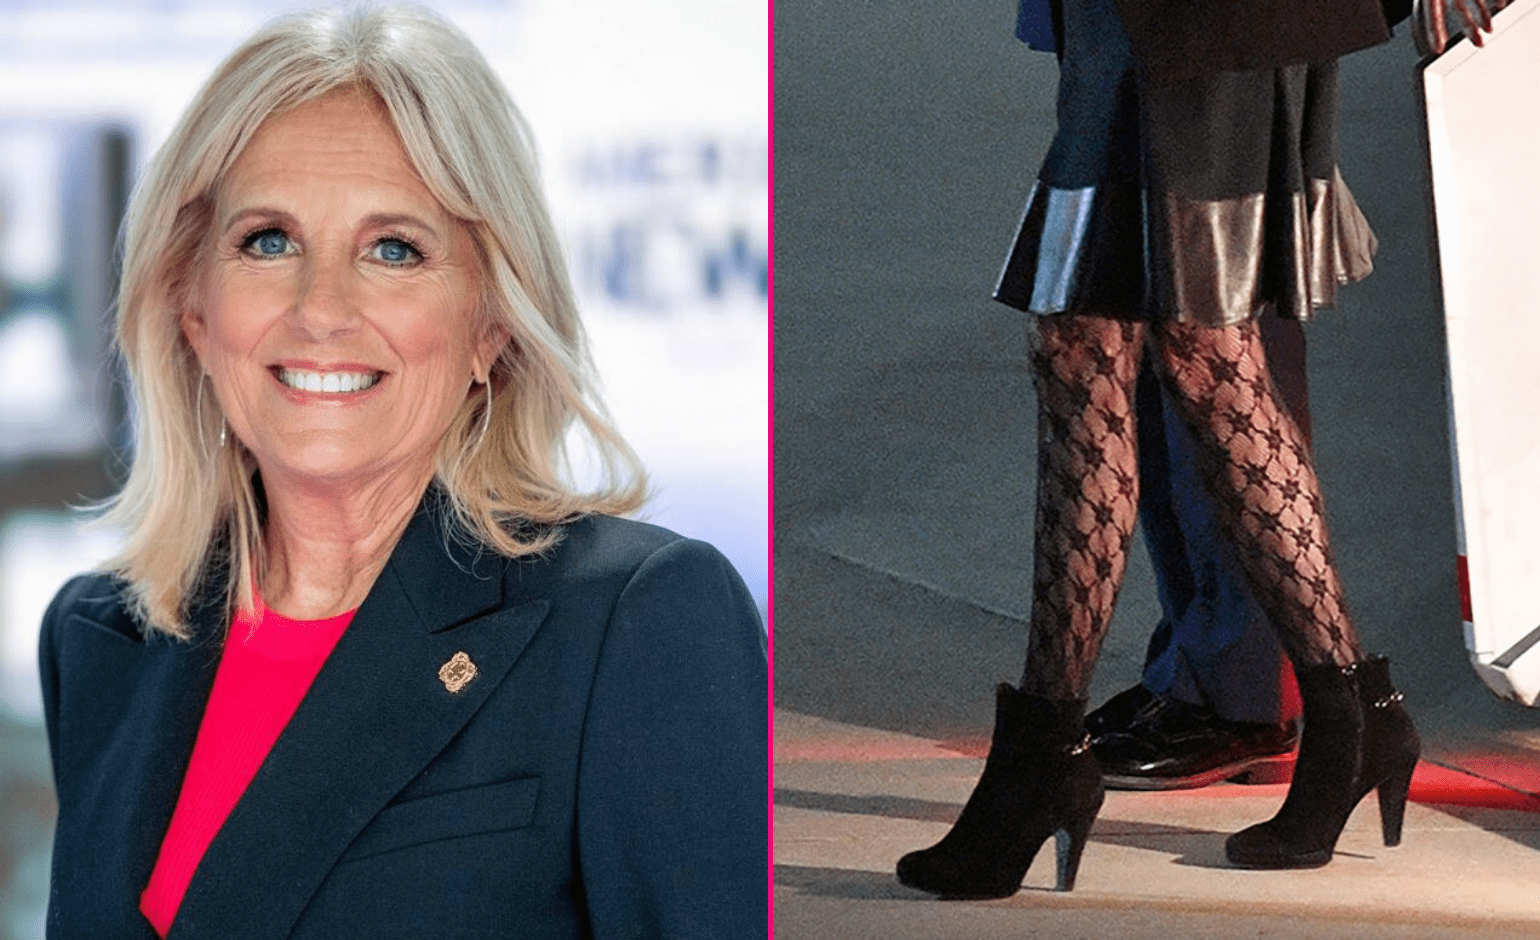 Jill Biden Broke Twitter Wearing a Pair of Black Fishnet Tights